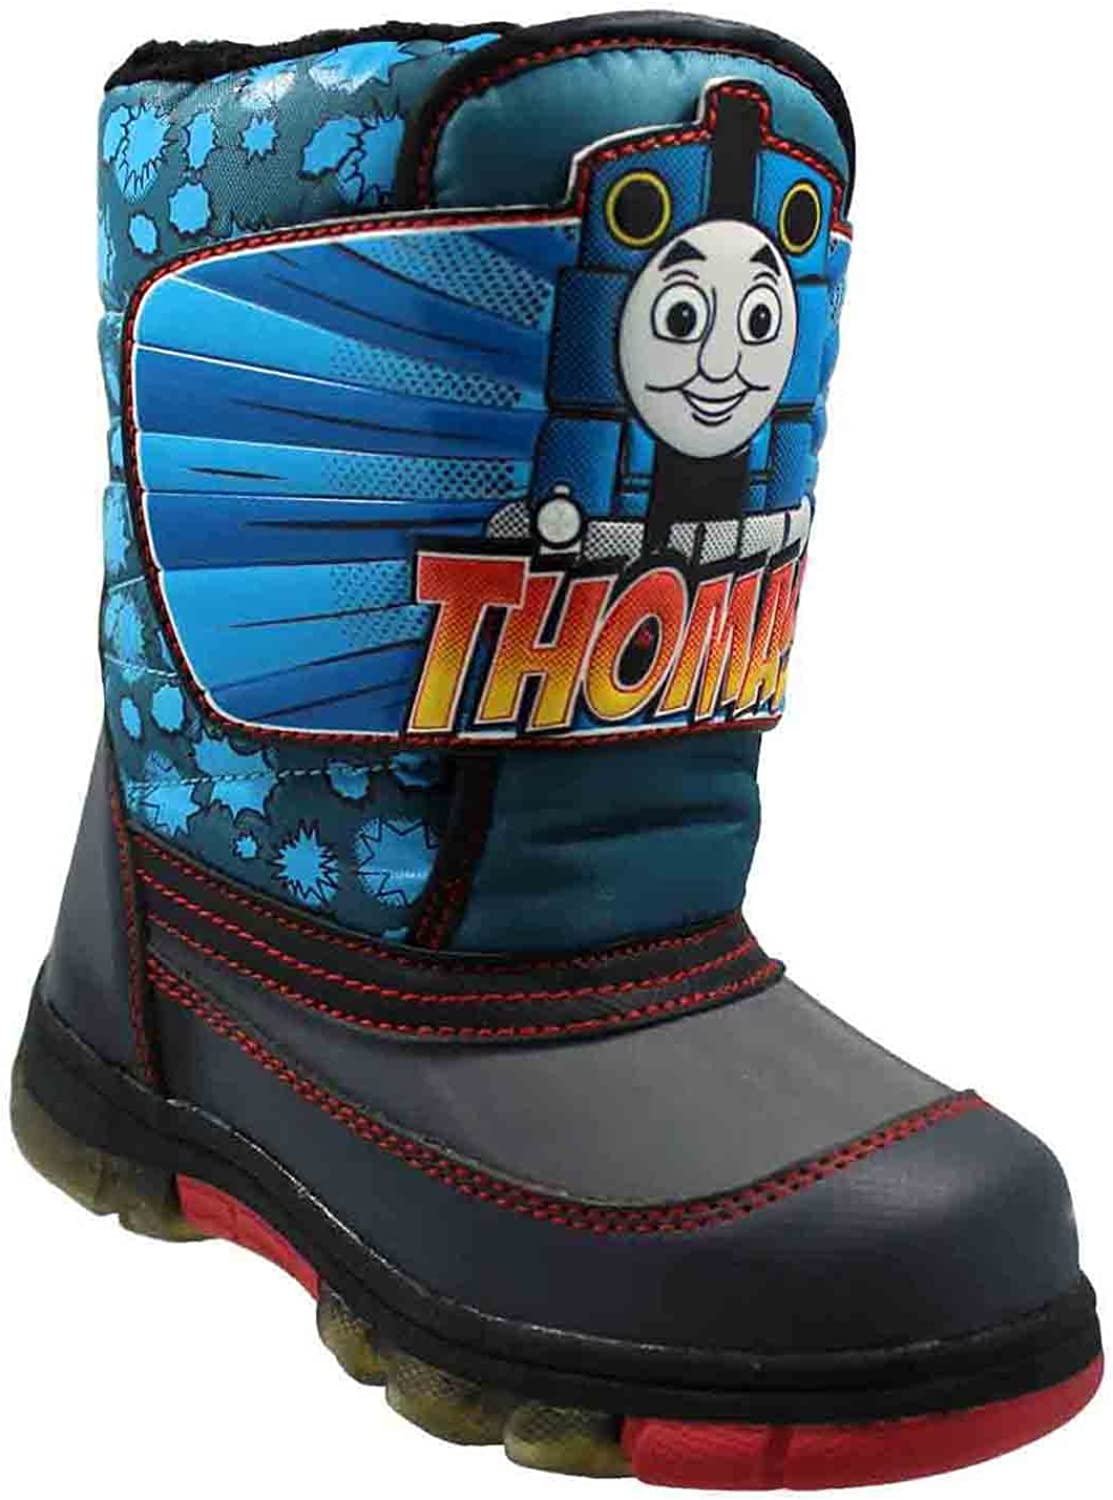 Blue Toddler Boys Thomas Winter Boots with Lights 8 M US Toddler